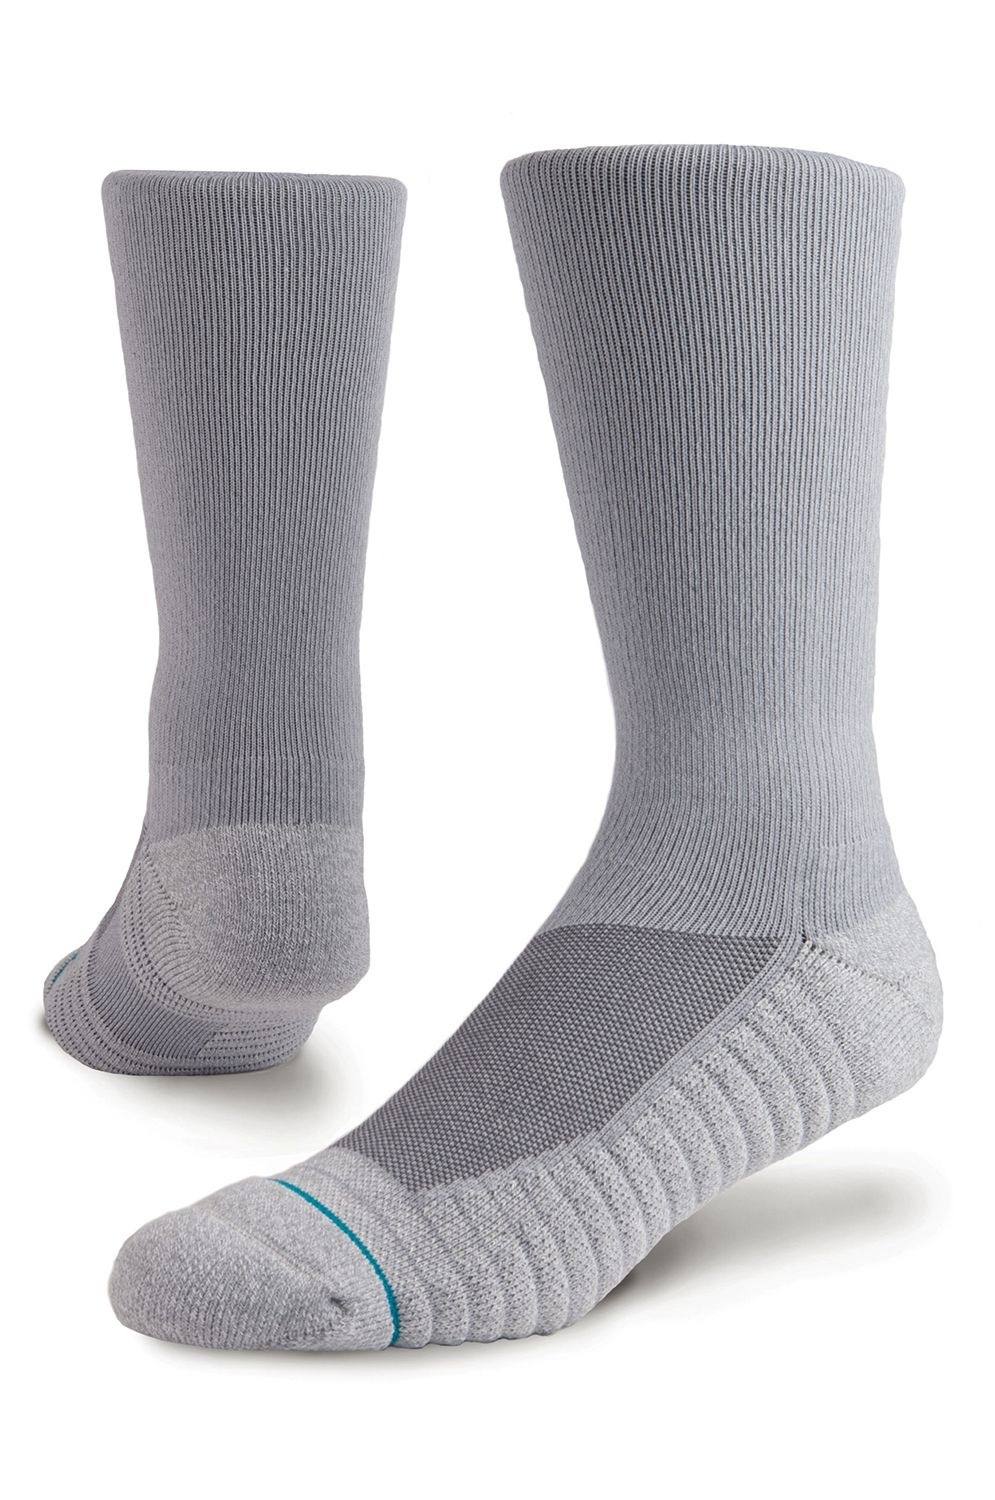 Stance Socks ATHLETIC ICON Grey